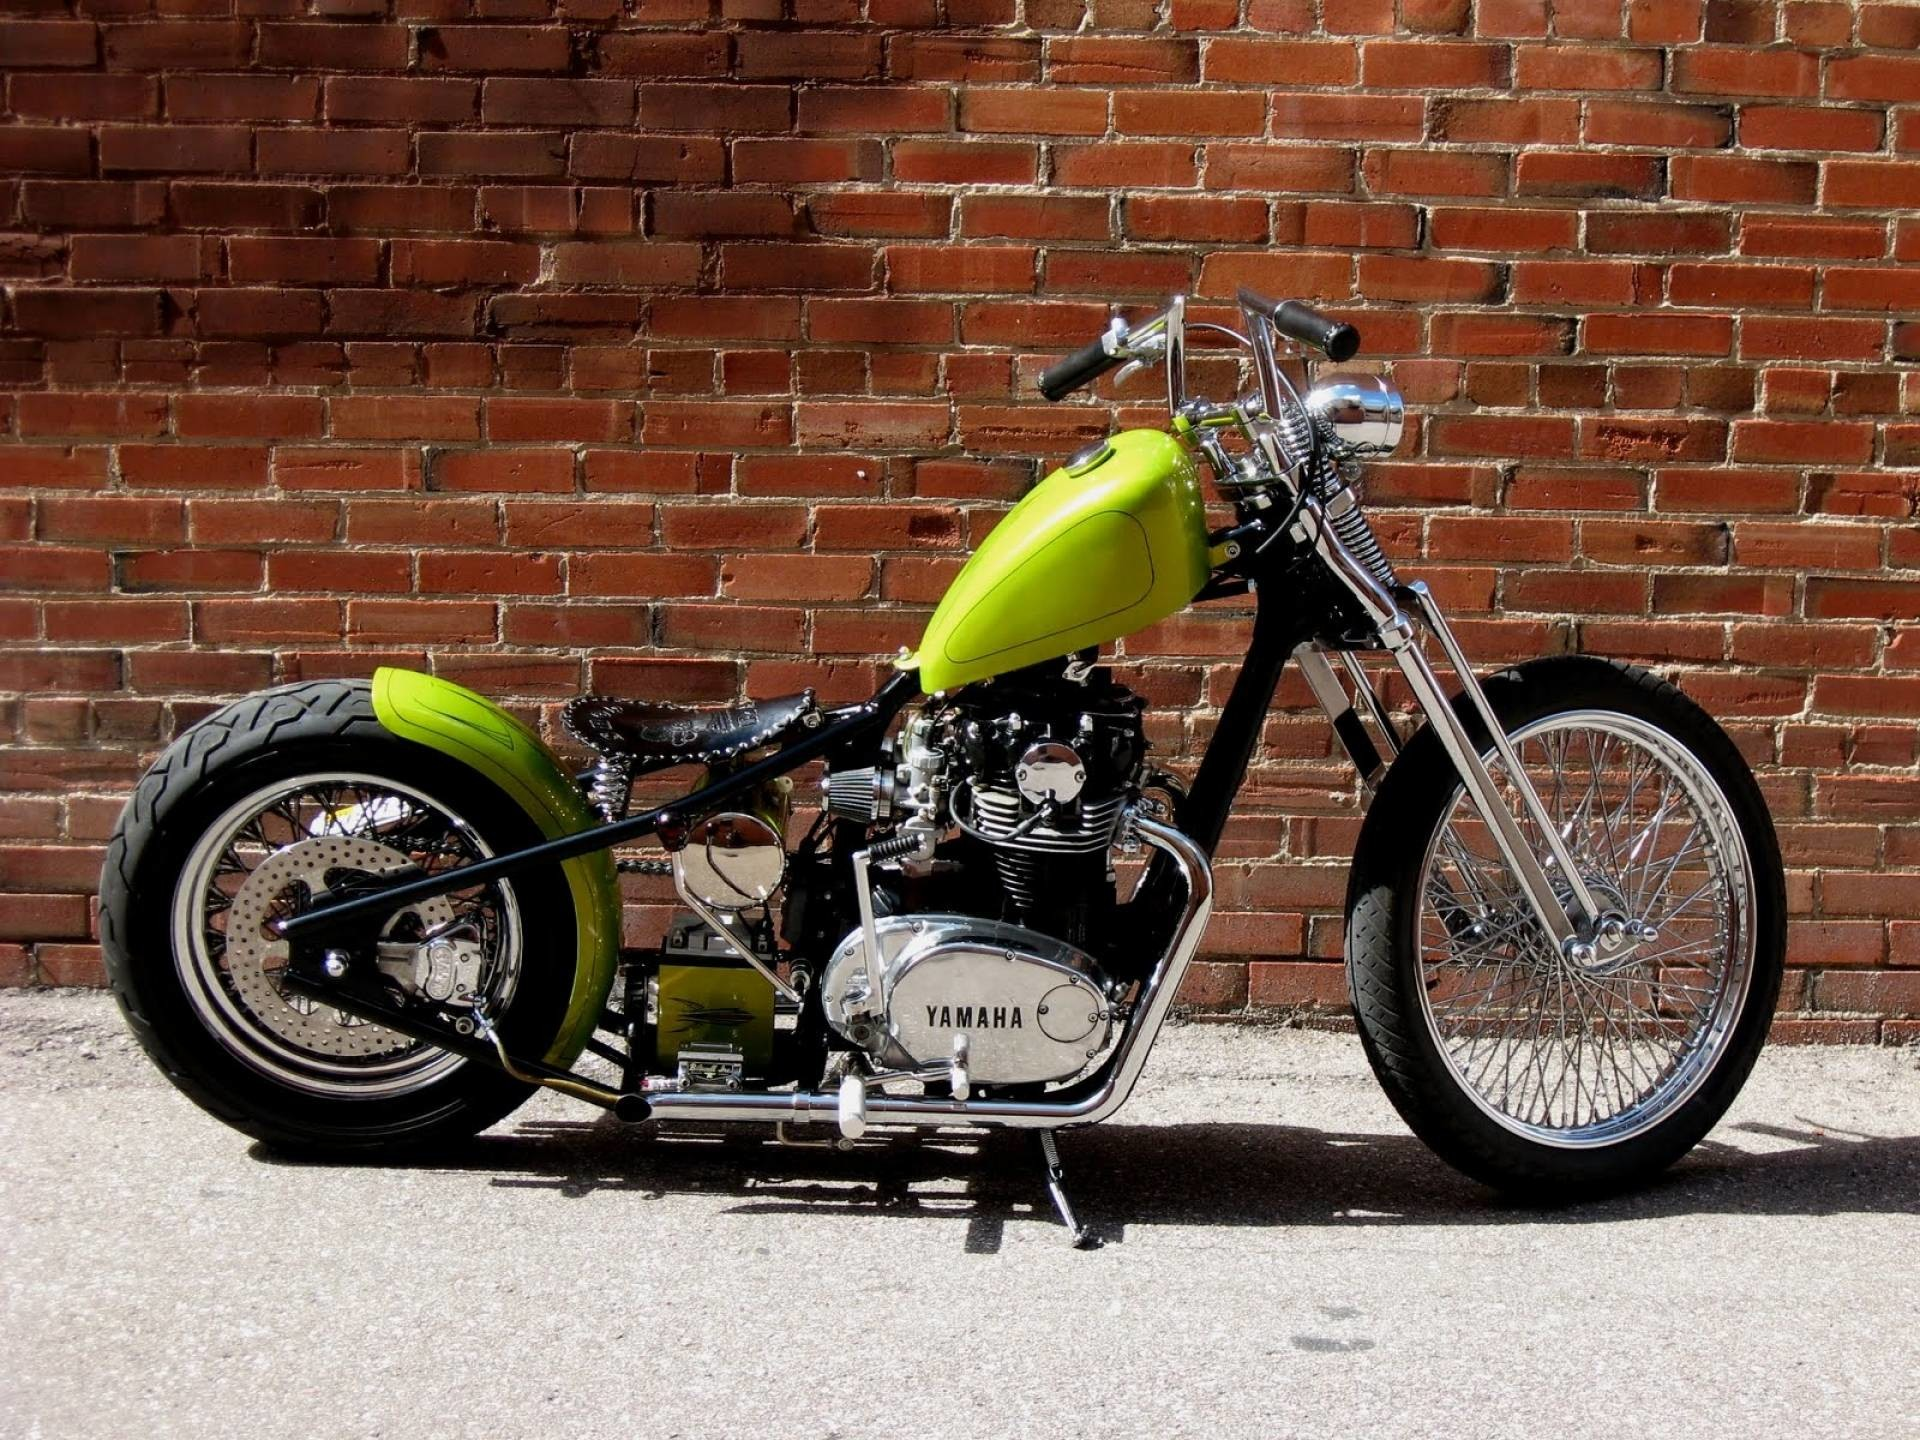 1920x1440 Yamaha Xs650 Lime Green Bobber Motorcycle